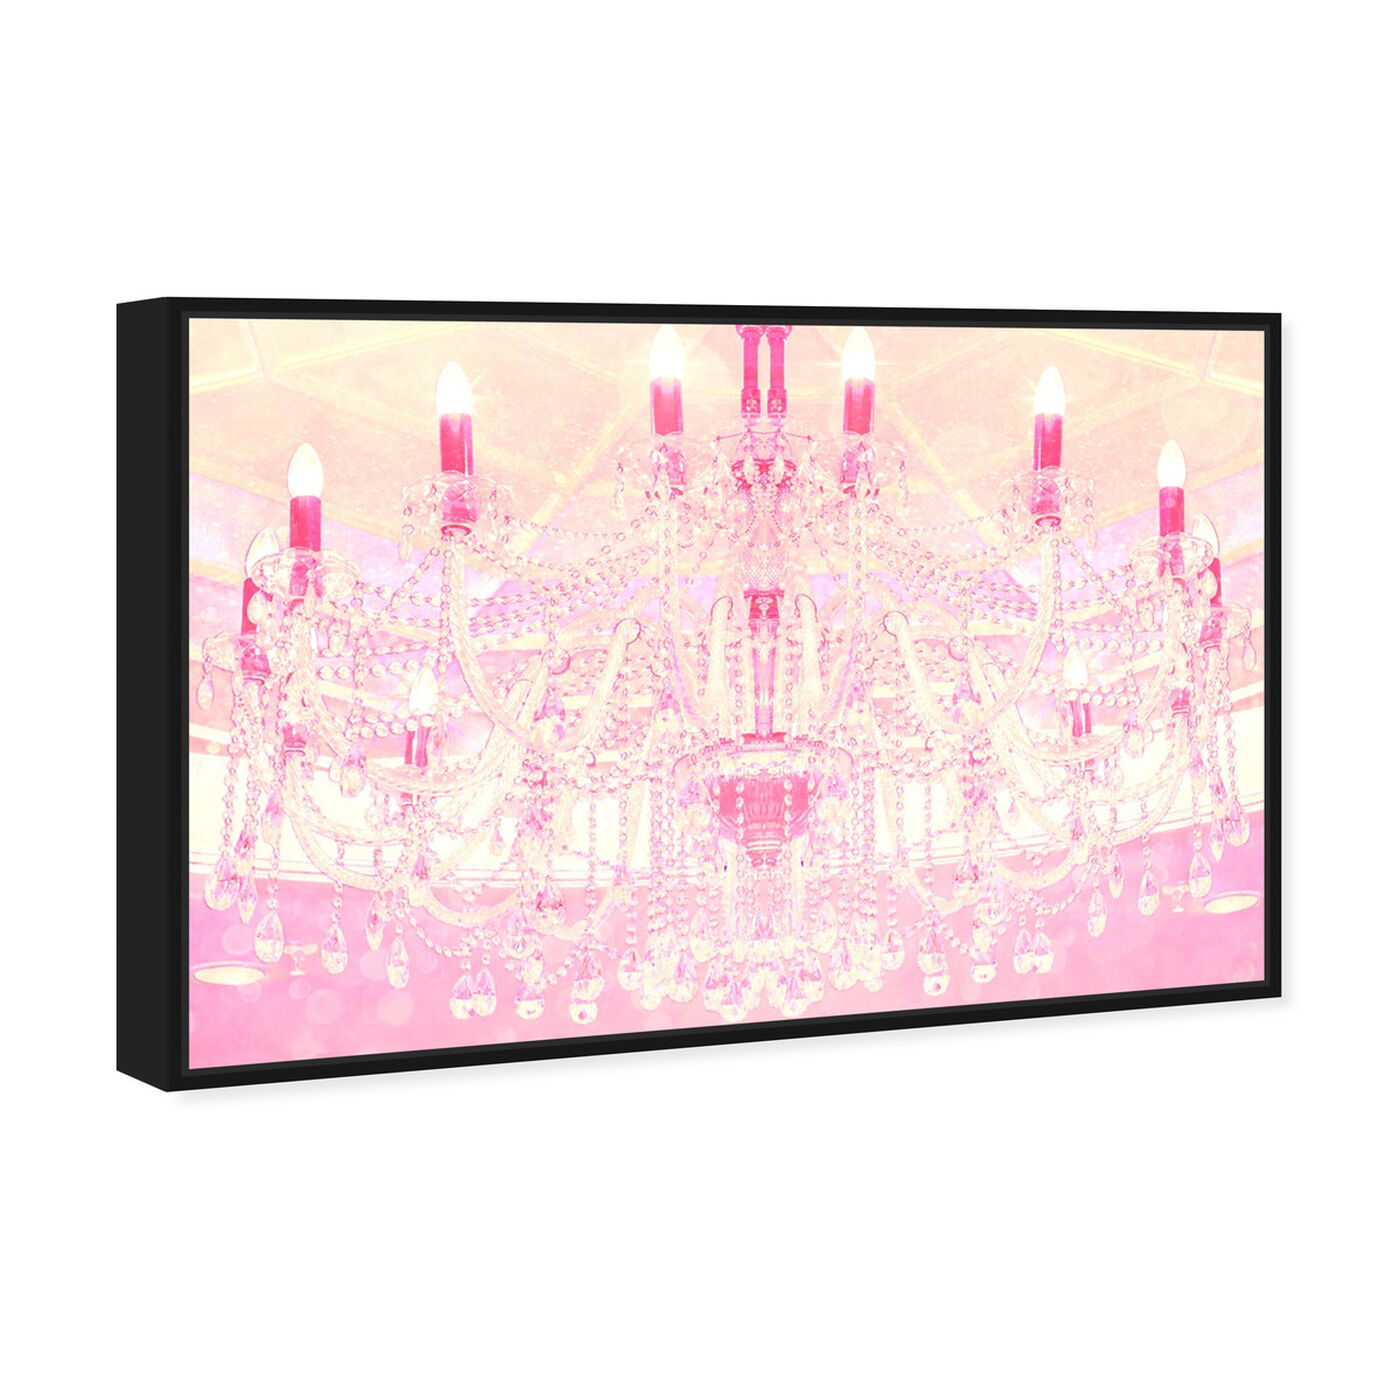 Angled view of Strawberry Vanilla Lights  featuring fashion and glam and chandeliers art.